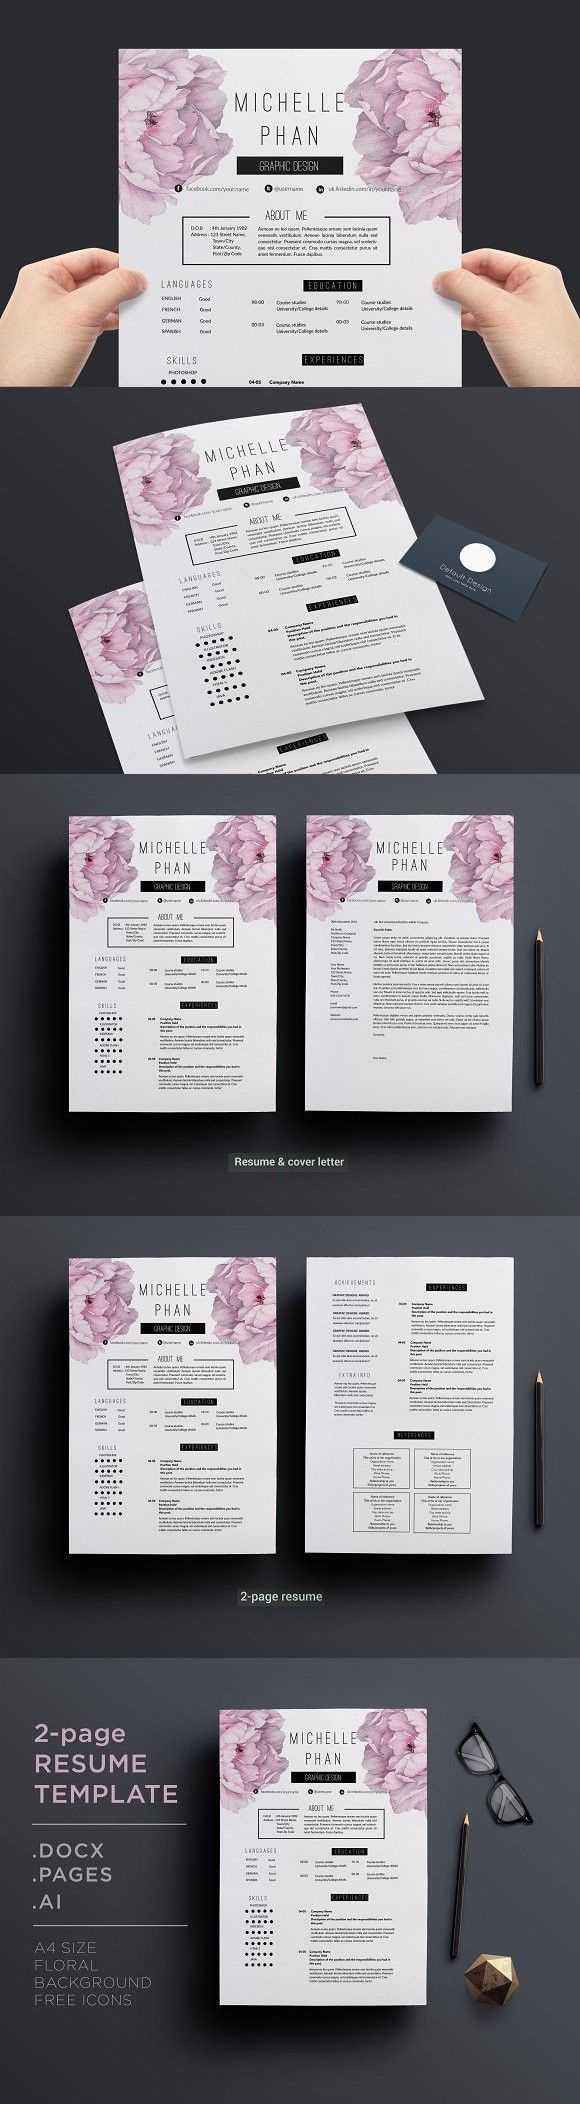 cover letter flight attendant%0A   page resume template cover letter  template  cvdesign